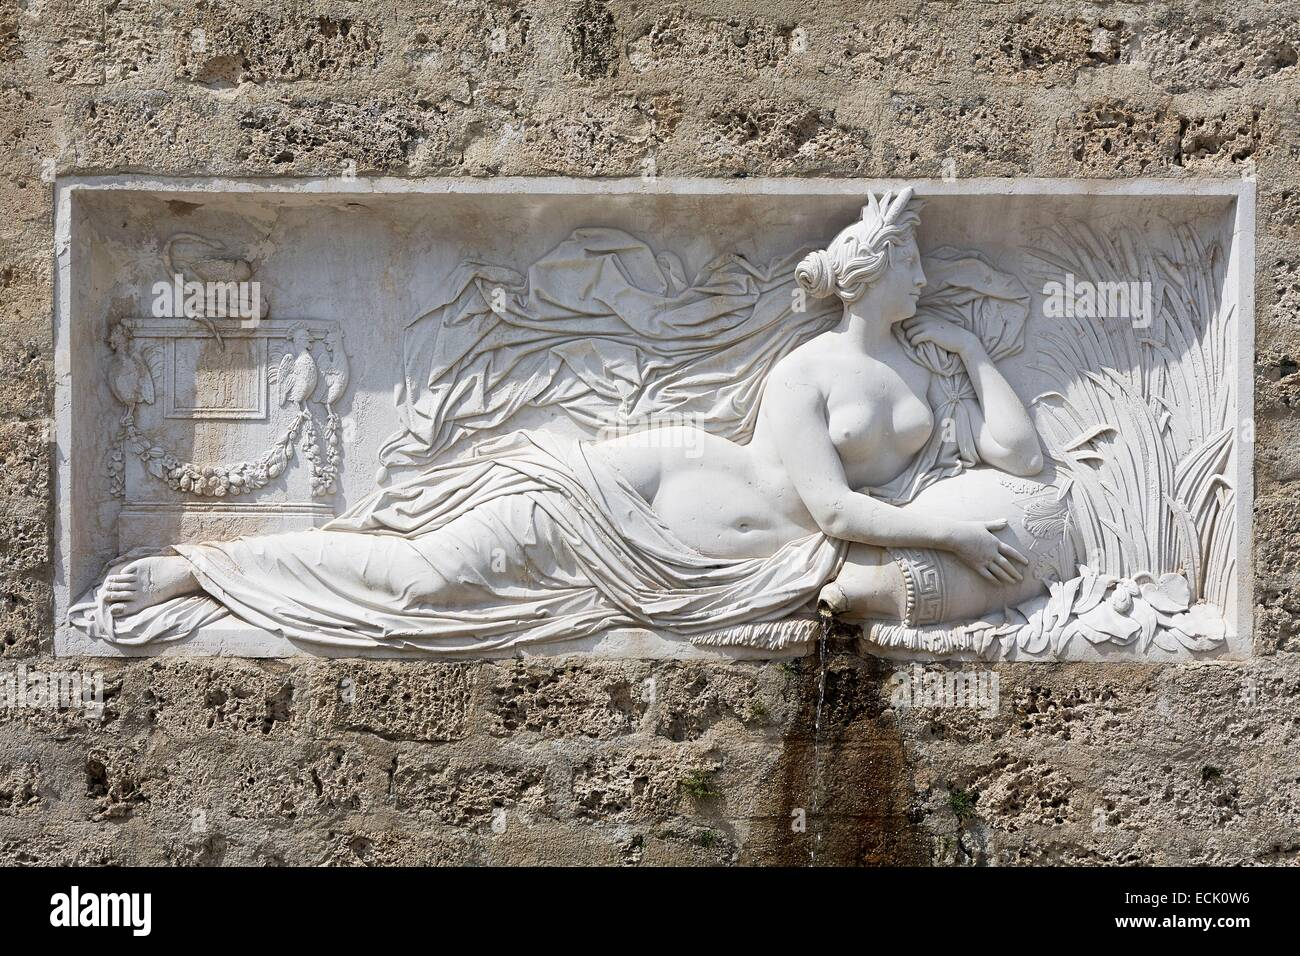 France, Isere, Uriage les Bains, Spa, Fountain of the Healer Goddess Hygeia, conducted in 1847 by Pierre Victor - Stock Image